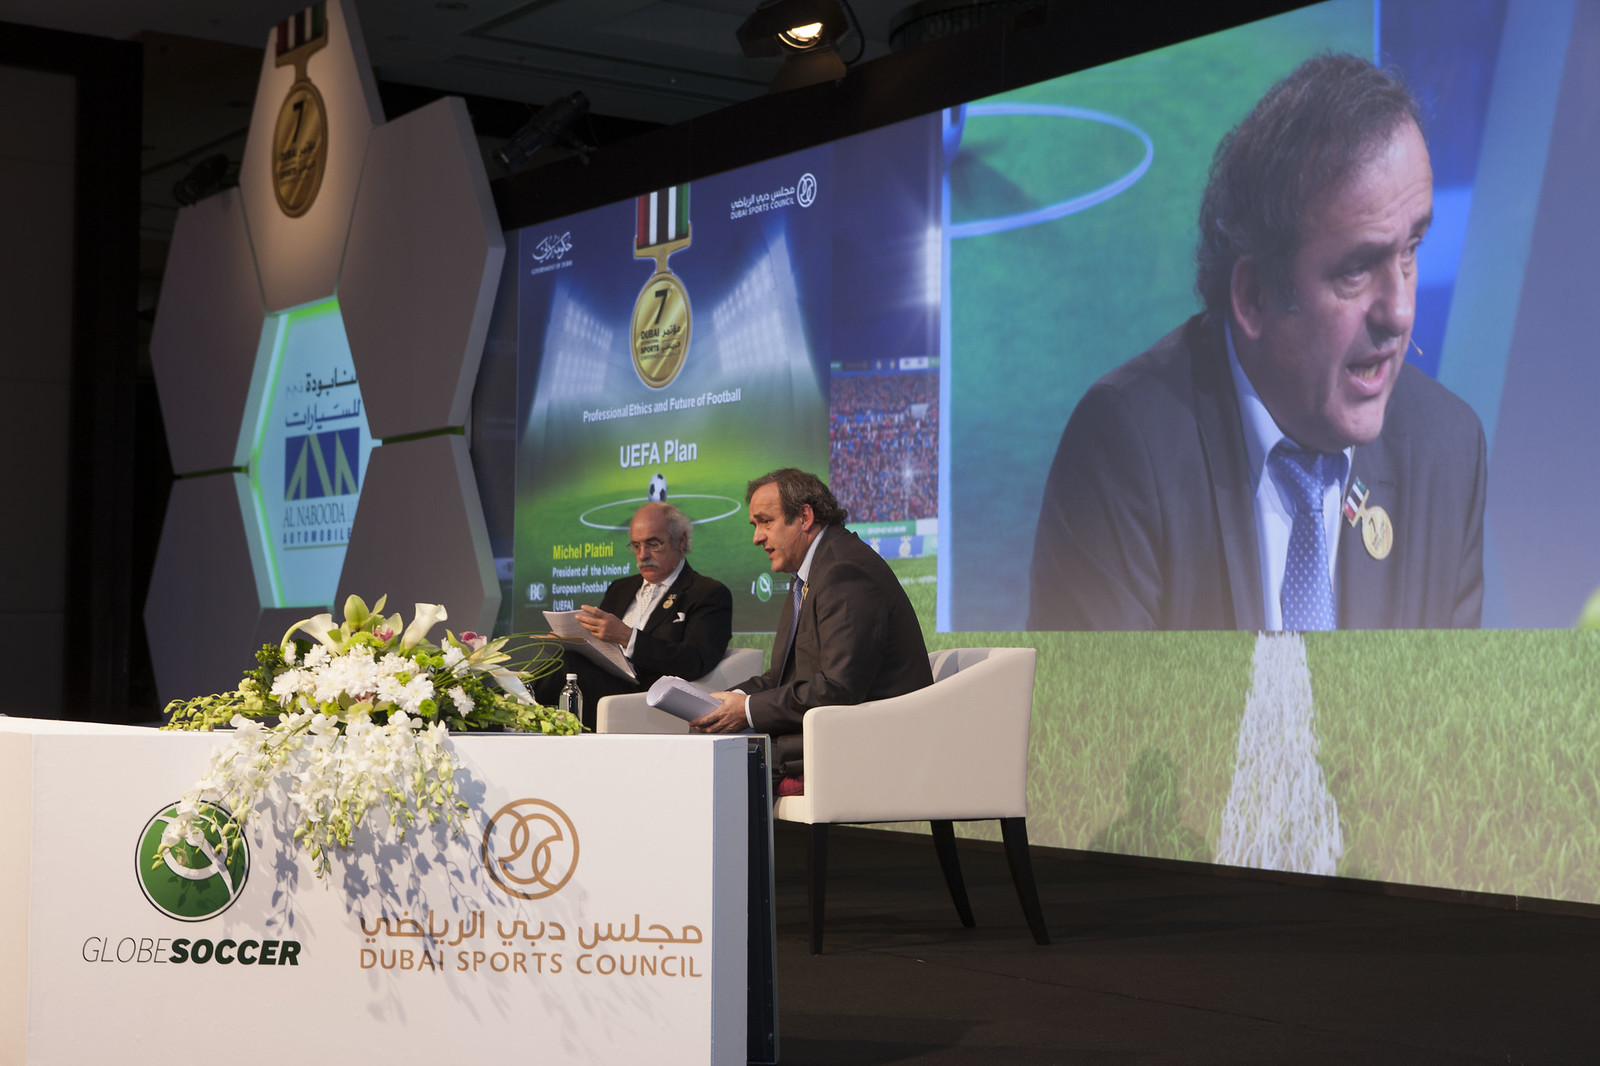 Tony Damascelli and Michel Platini